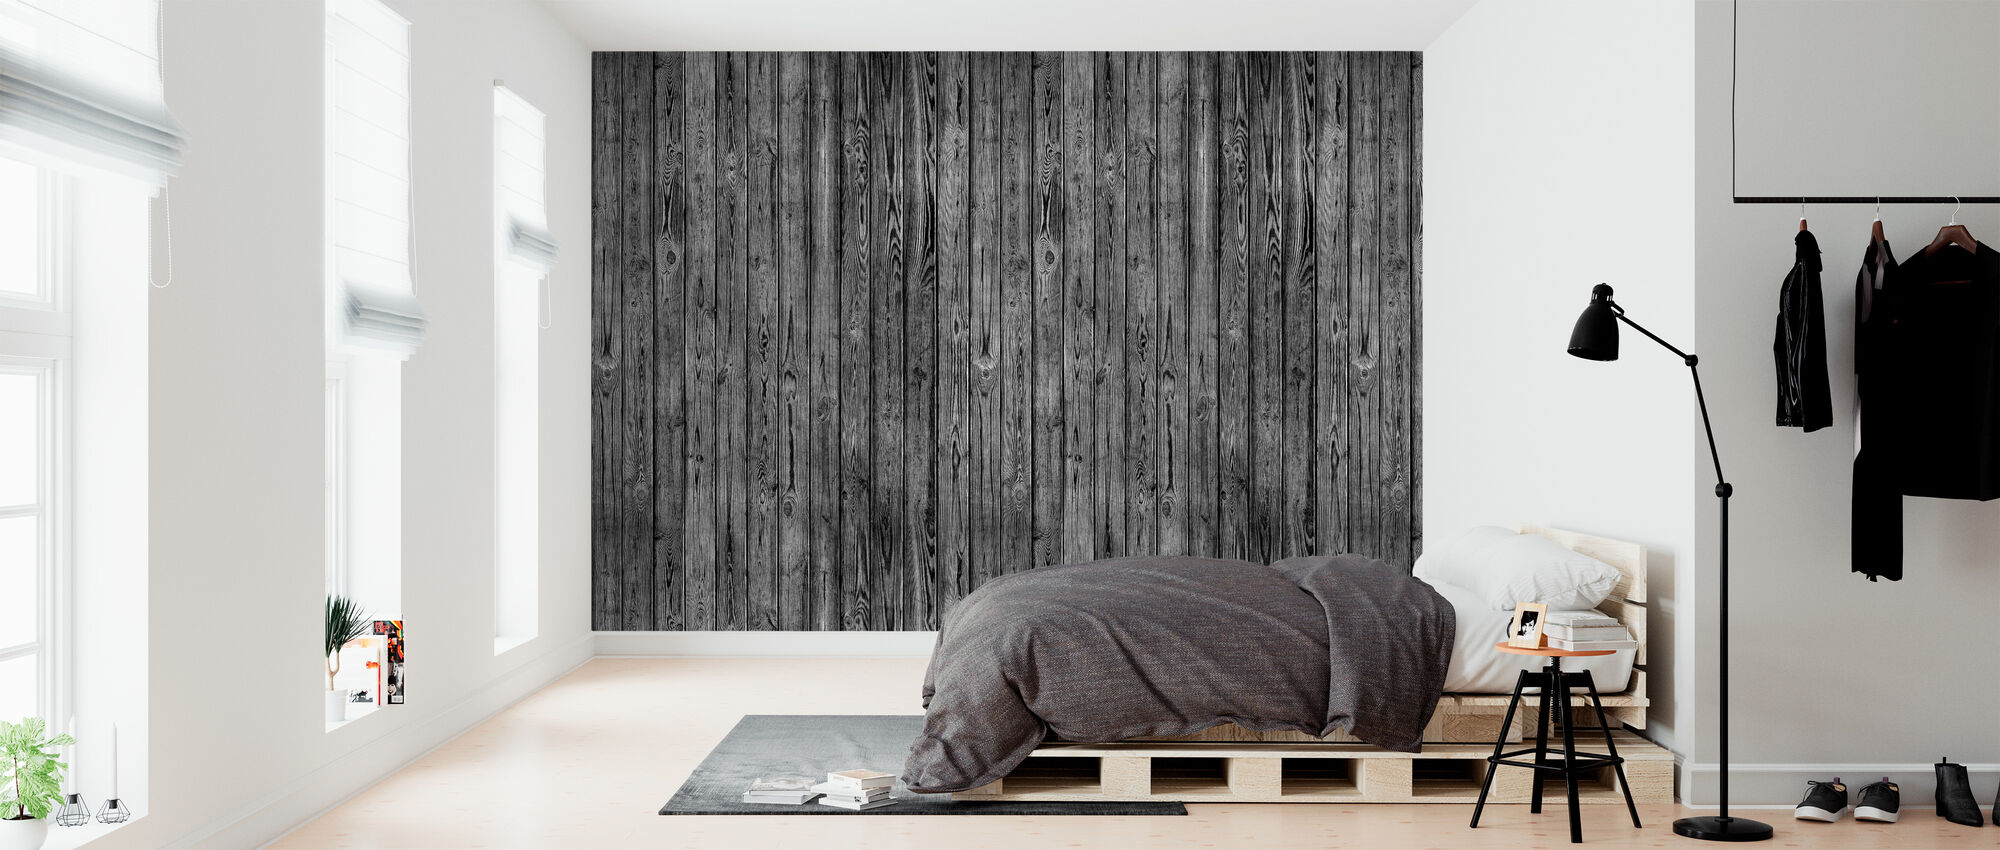 Wooden Plank Wall - Black - Wallpaper - Bedroom